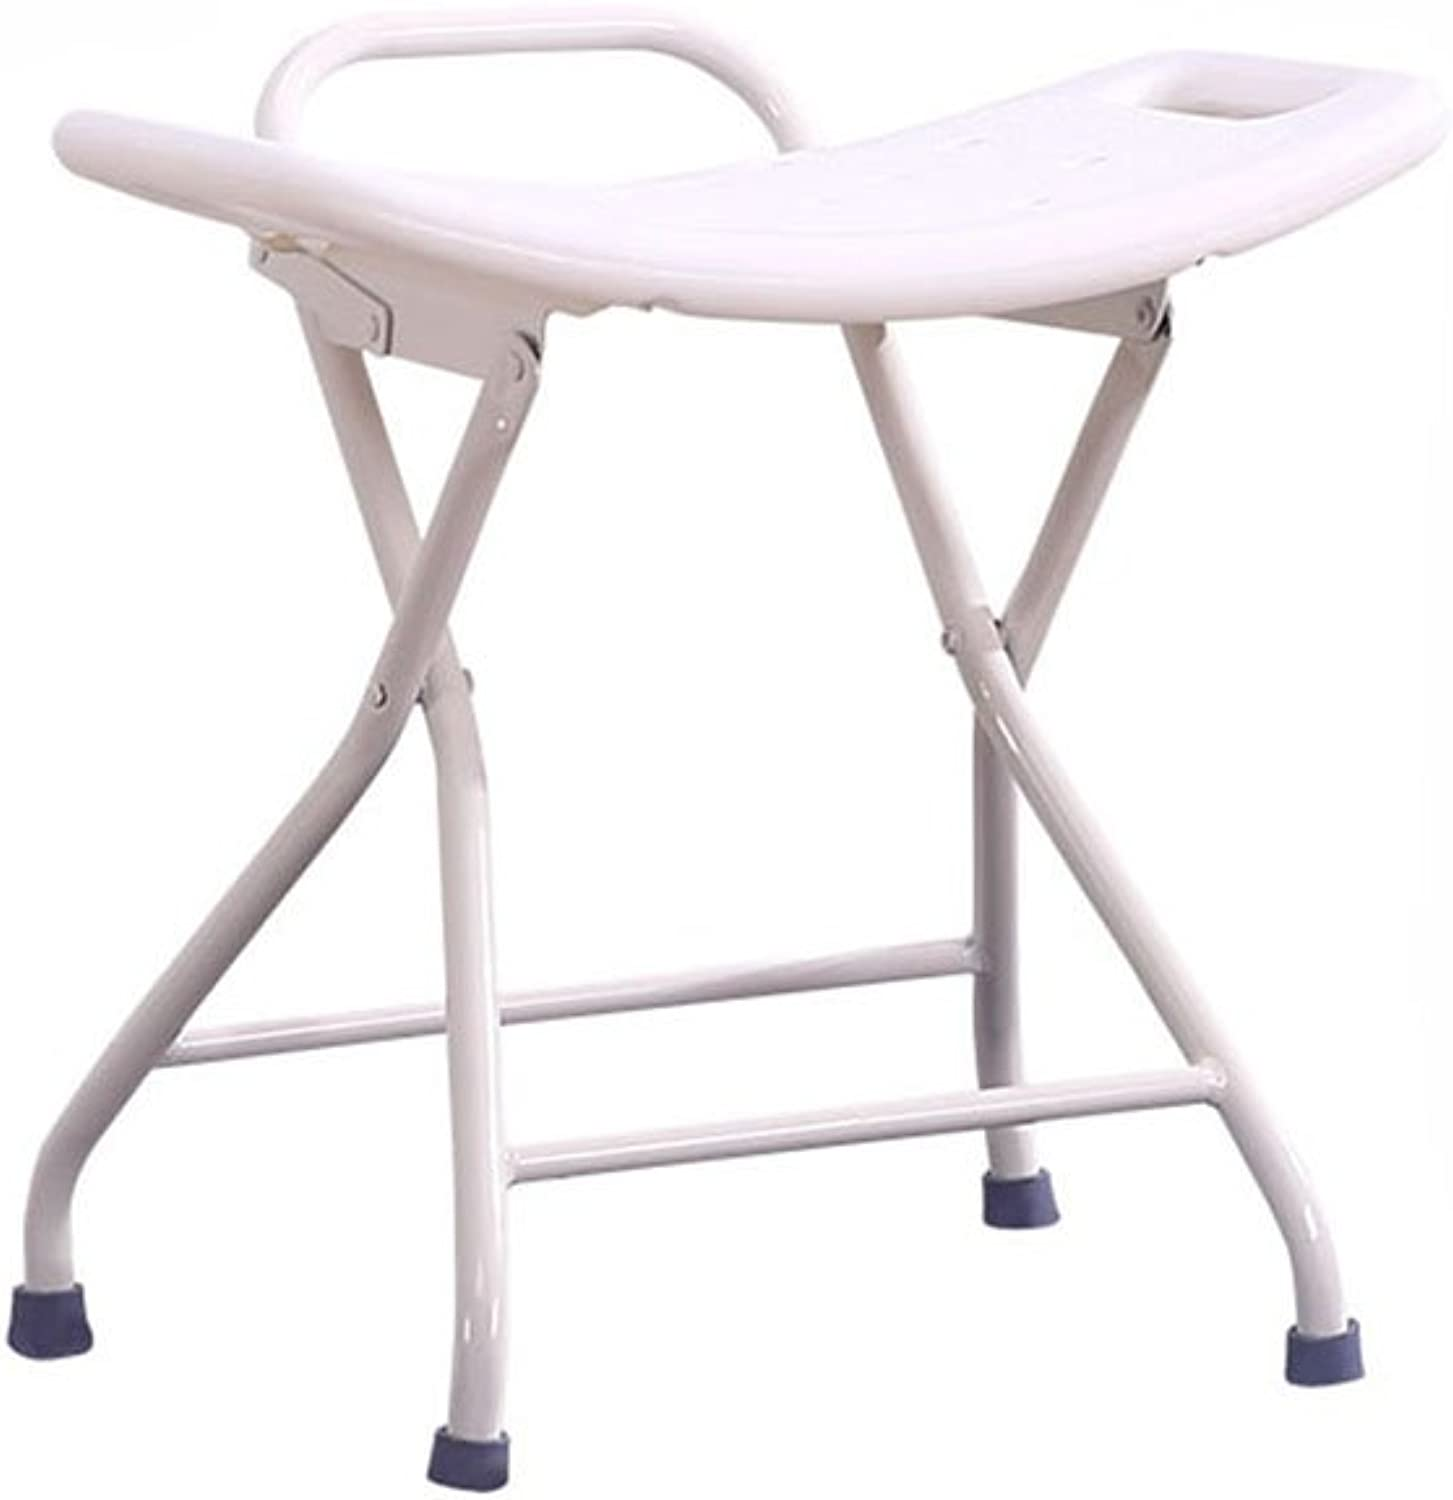 KTYXDE Bath Stool Home Folding Bathroom Stool Elderly Safety Small Chair Anti-Slip Stool Thick Plastic Stool Bathroom Chairs